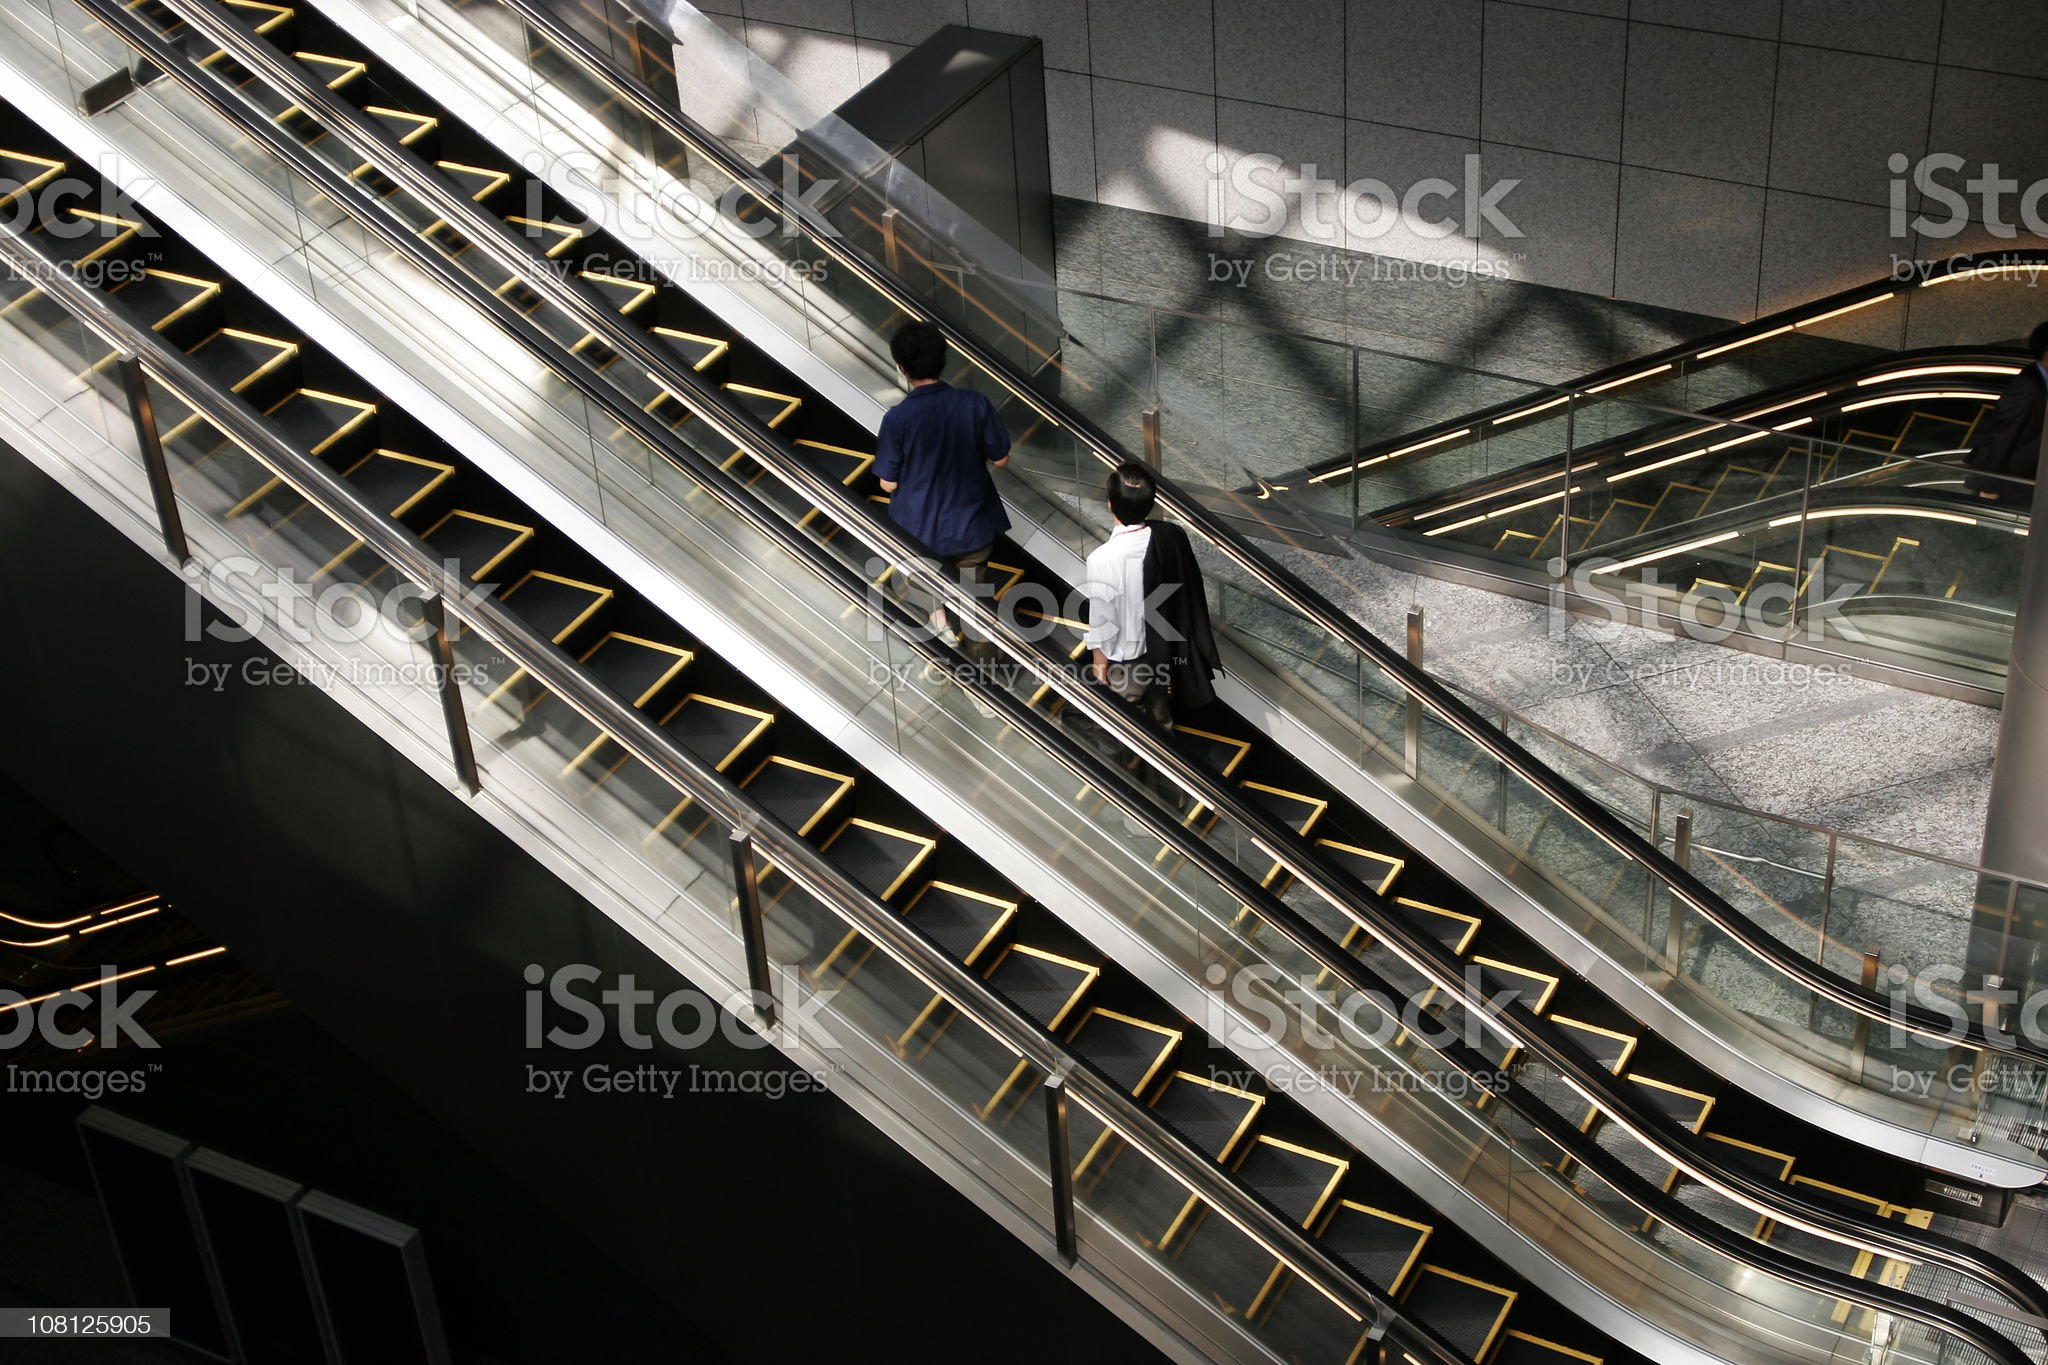 Two People Riding Escalator in Building royalty-free stock photo